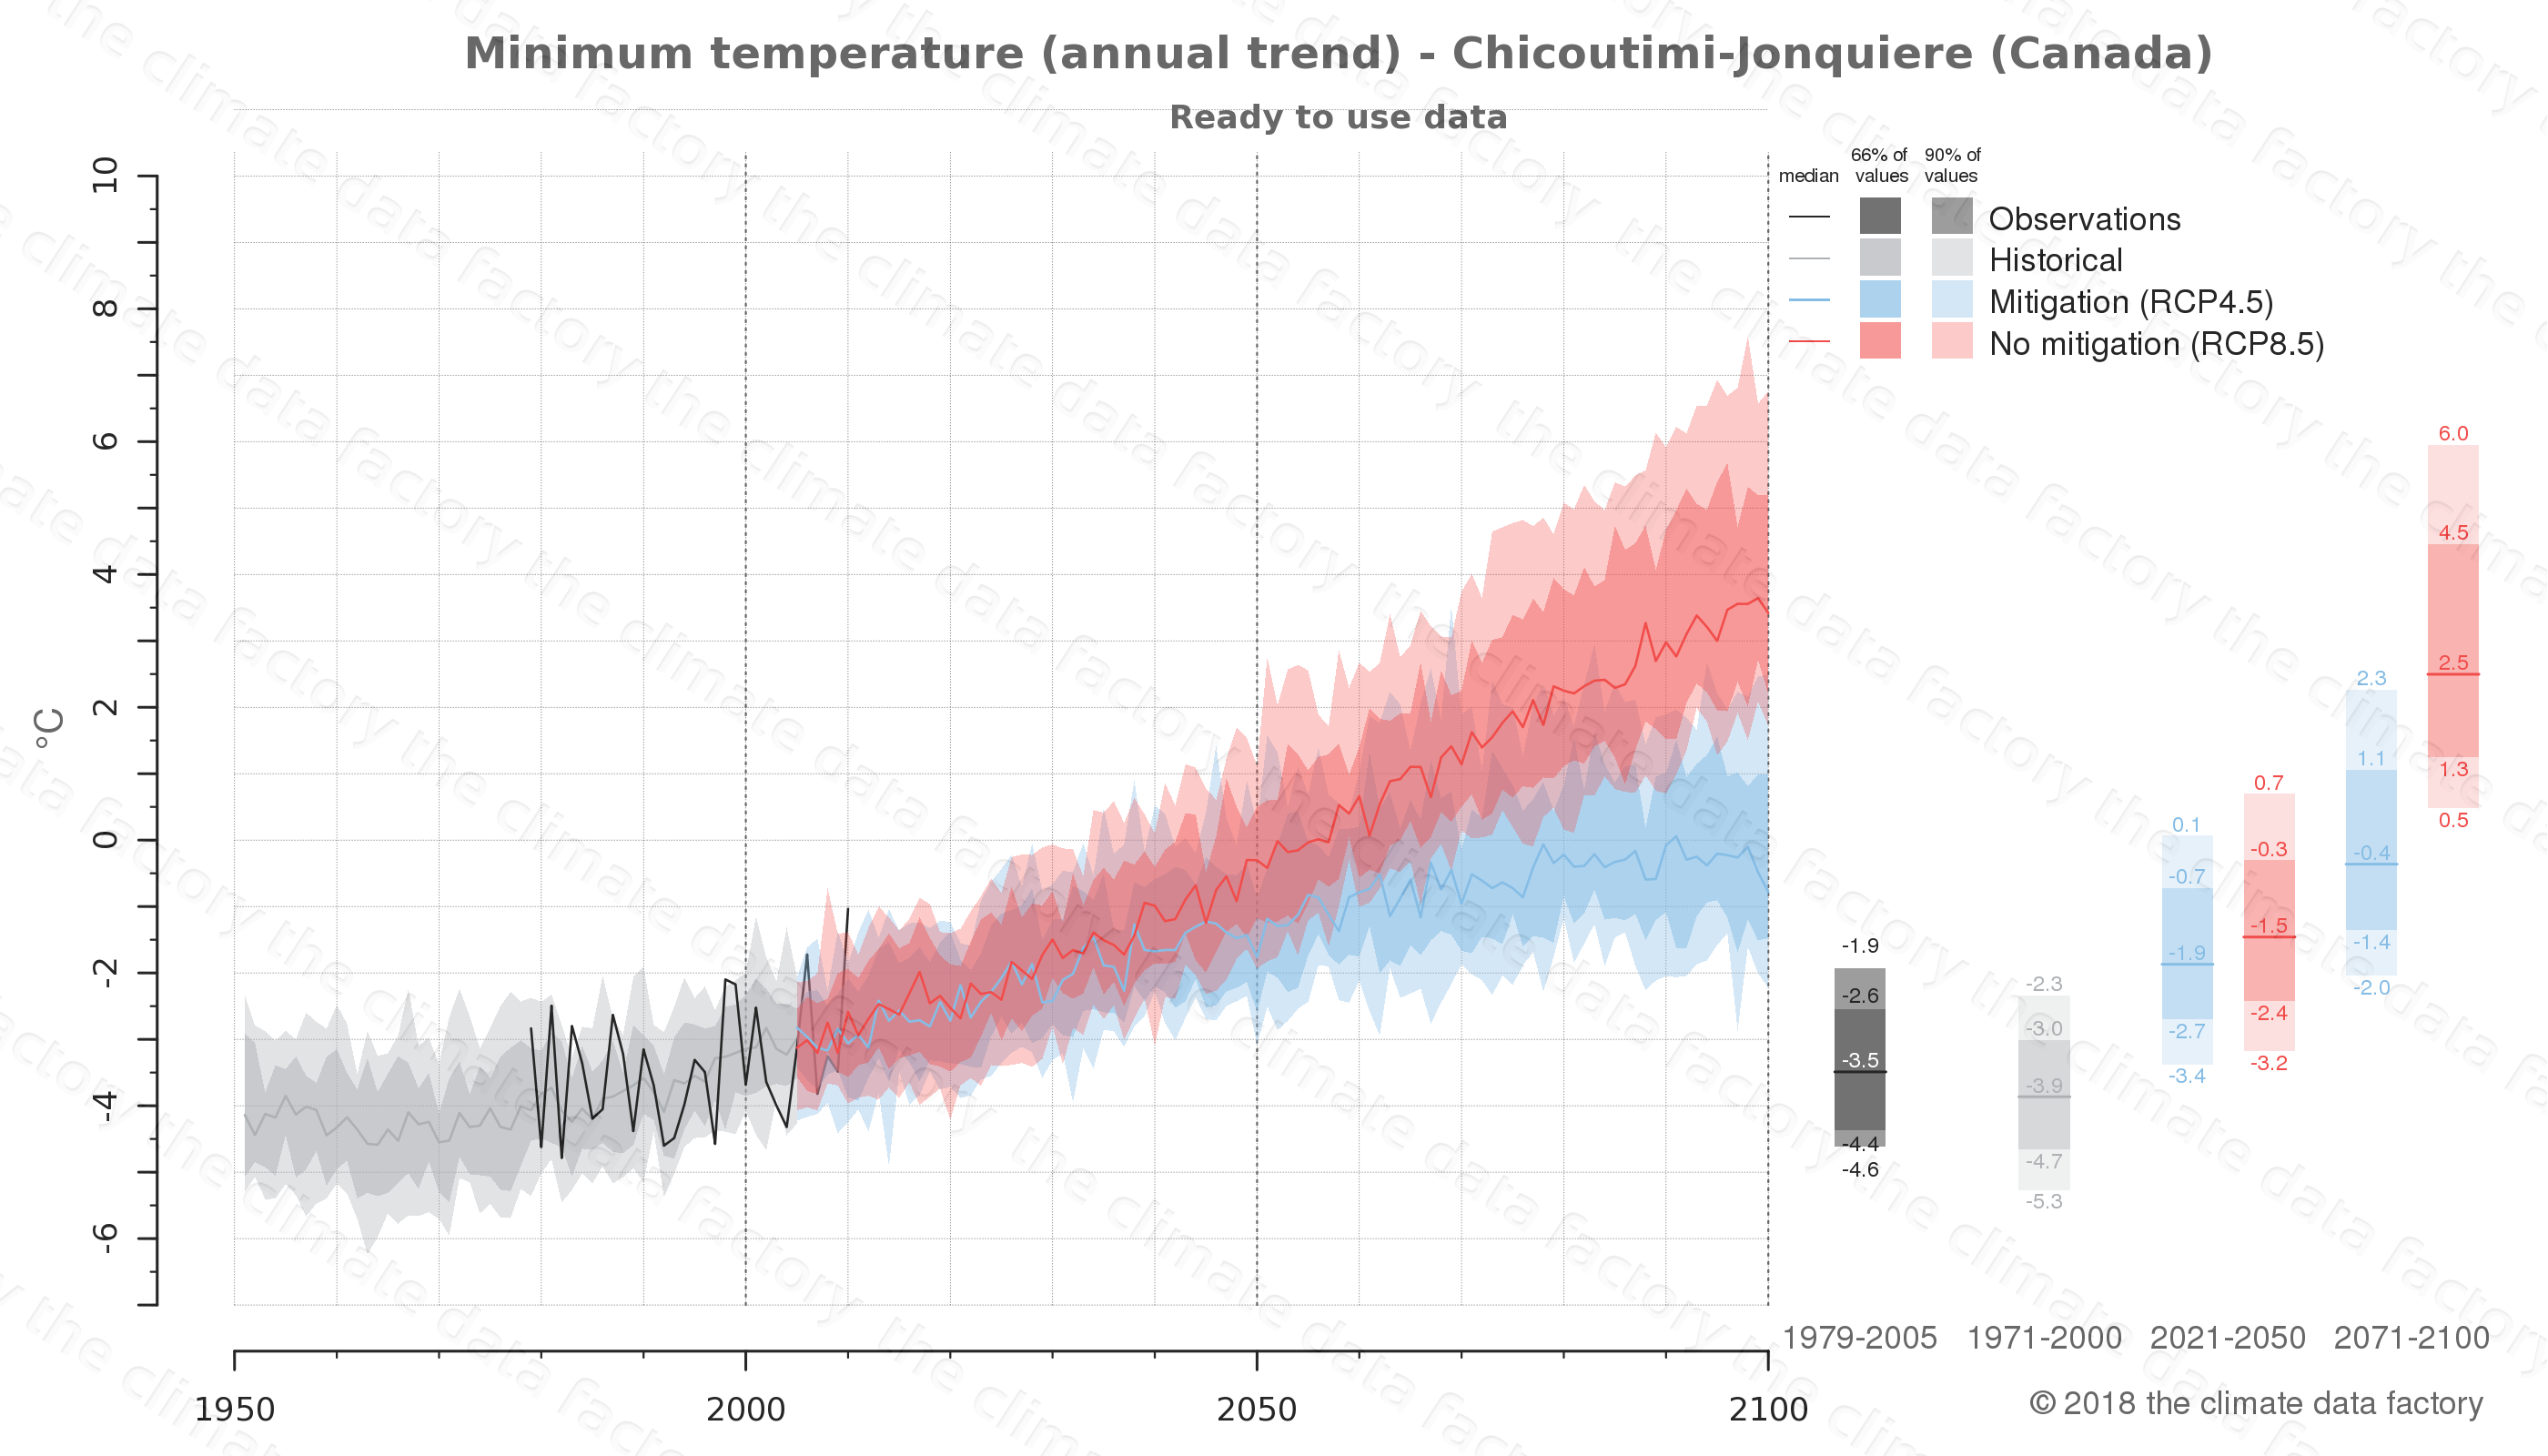 climate change data policy adaptation climate graph city data minimum-temperature chicoutimi-jonquiere canada